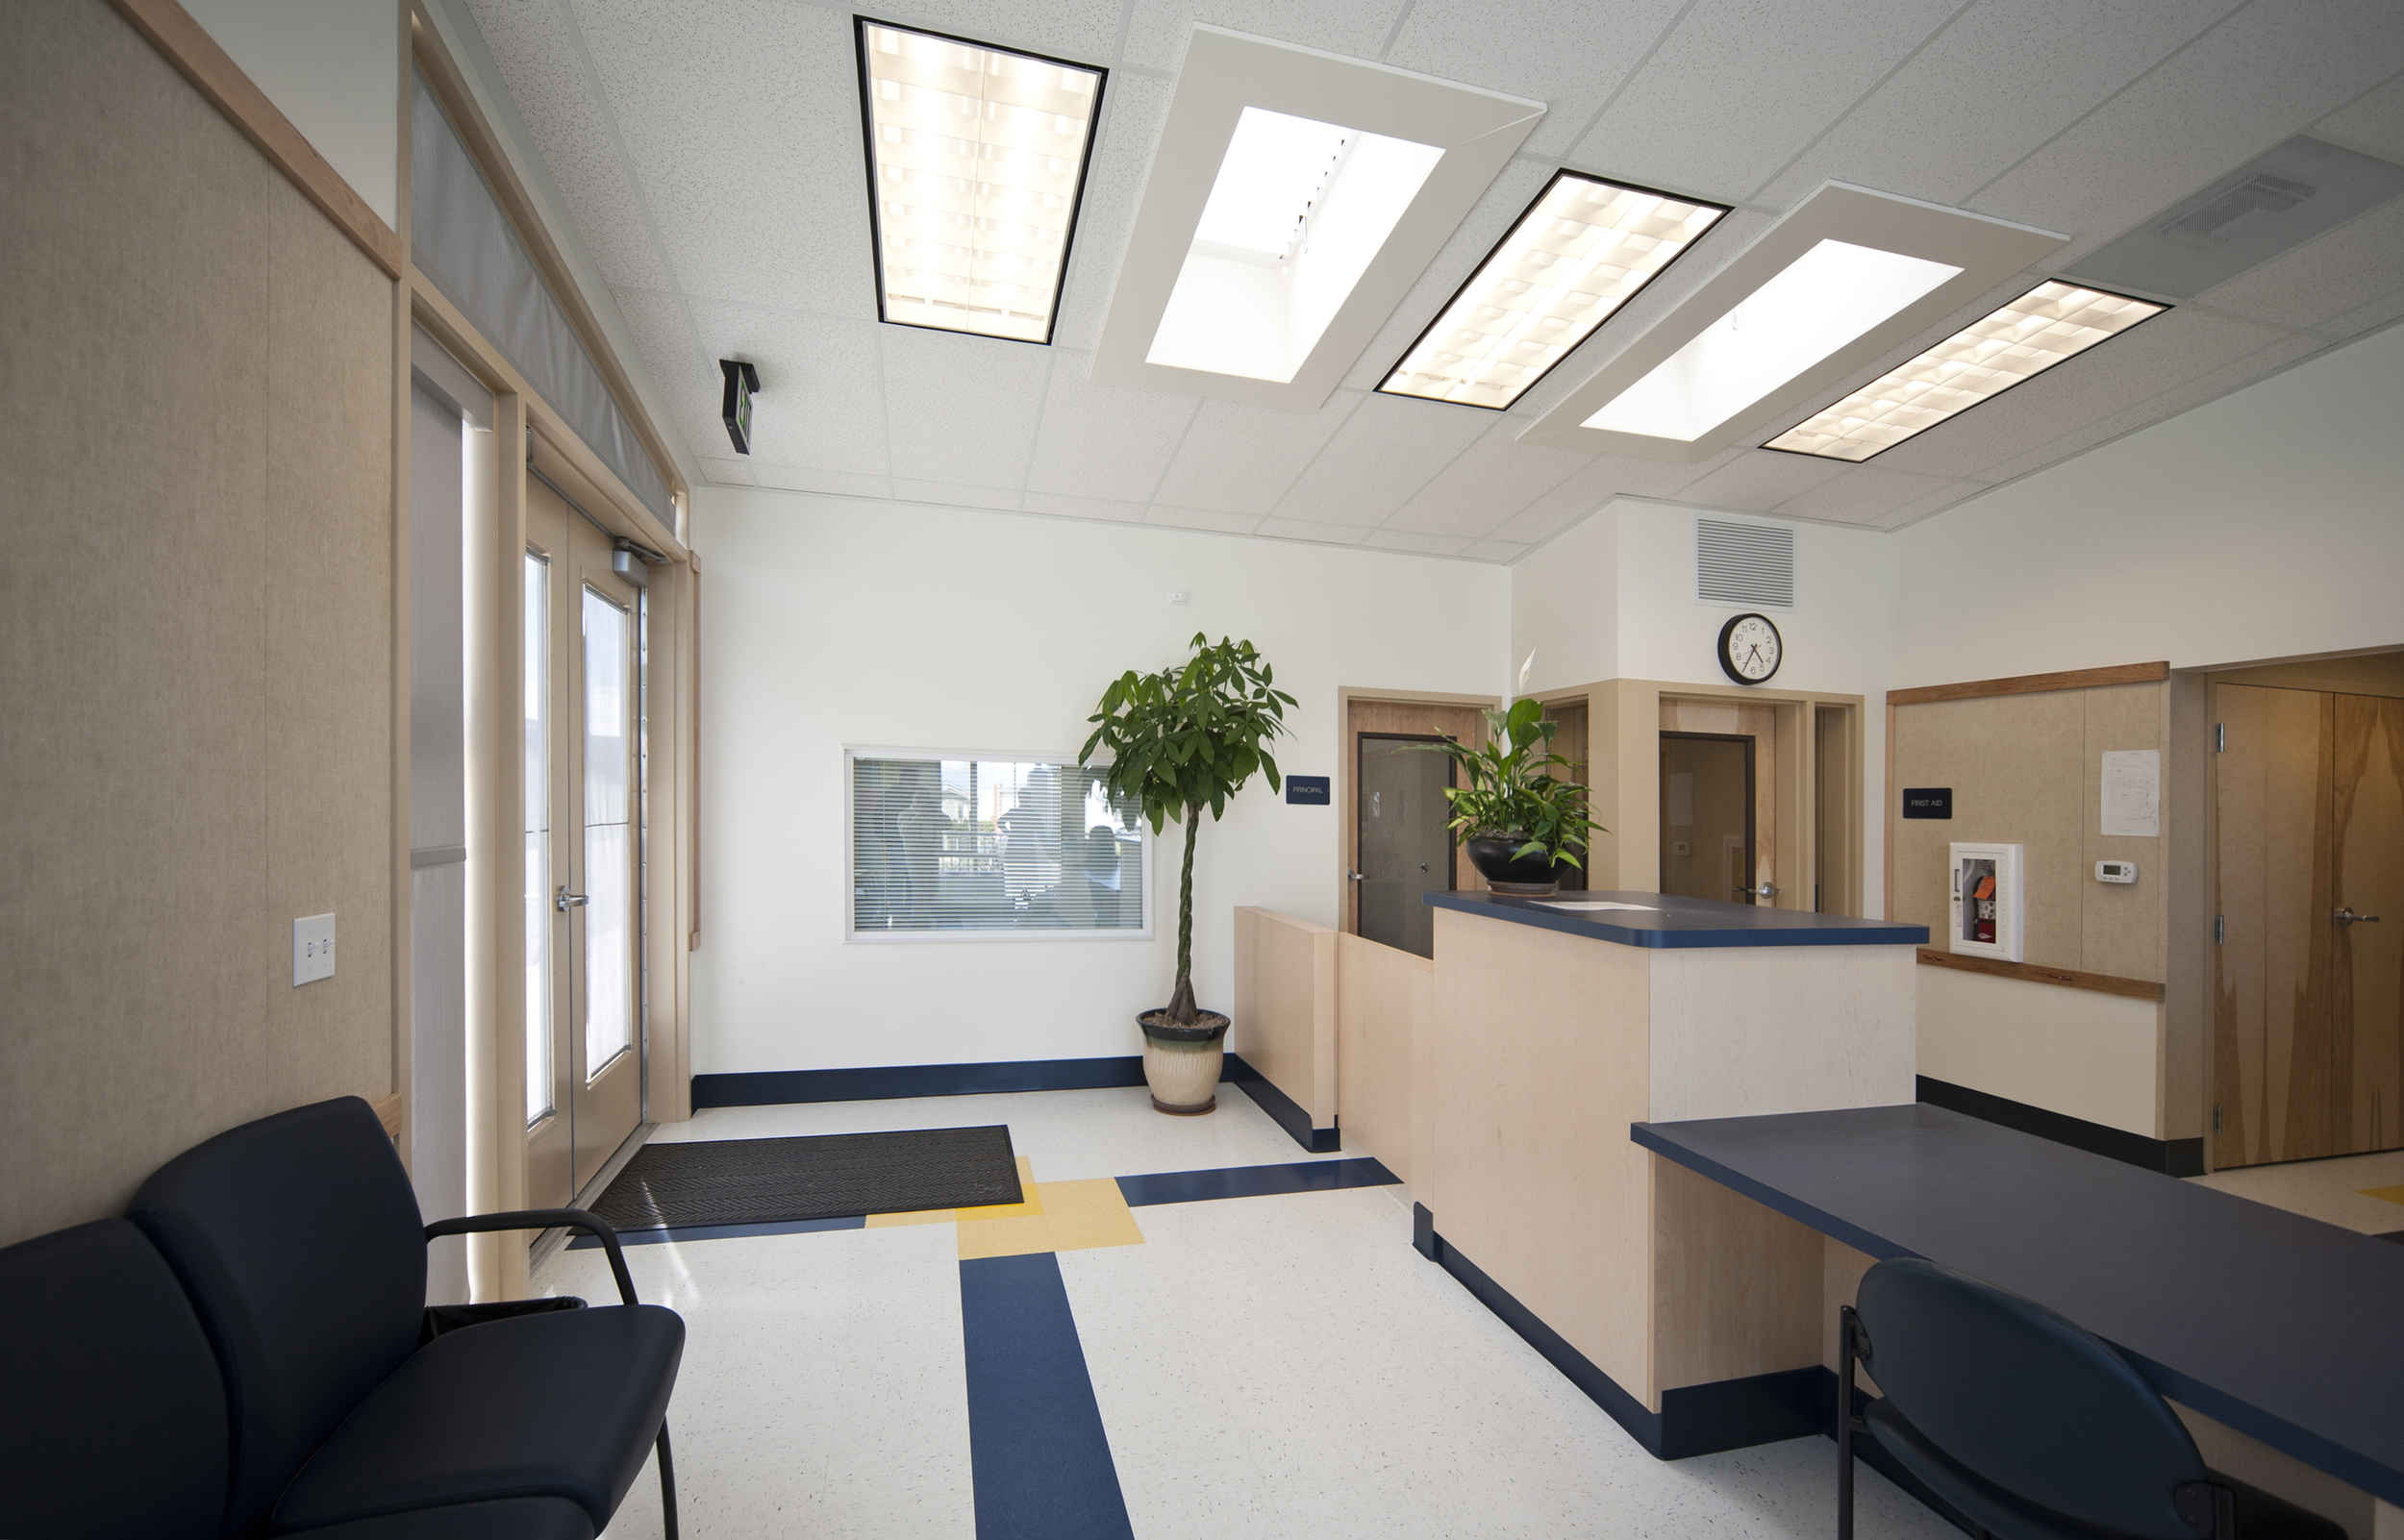 School Administrative Offices –South San Francisco